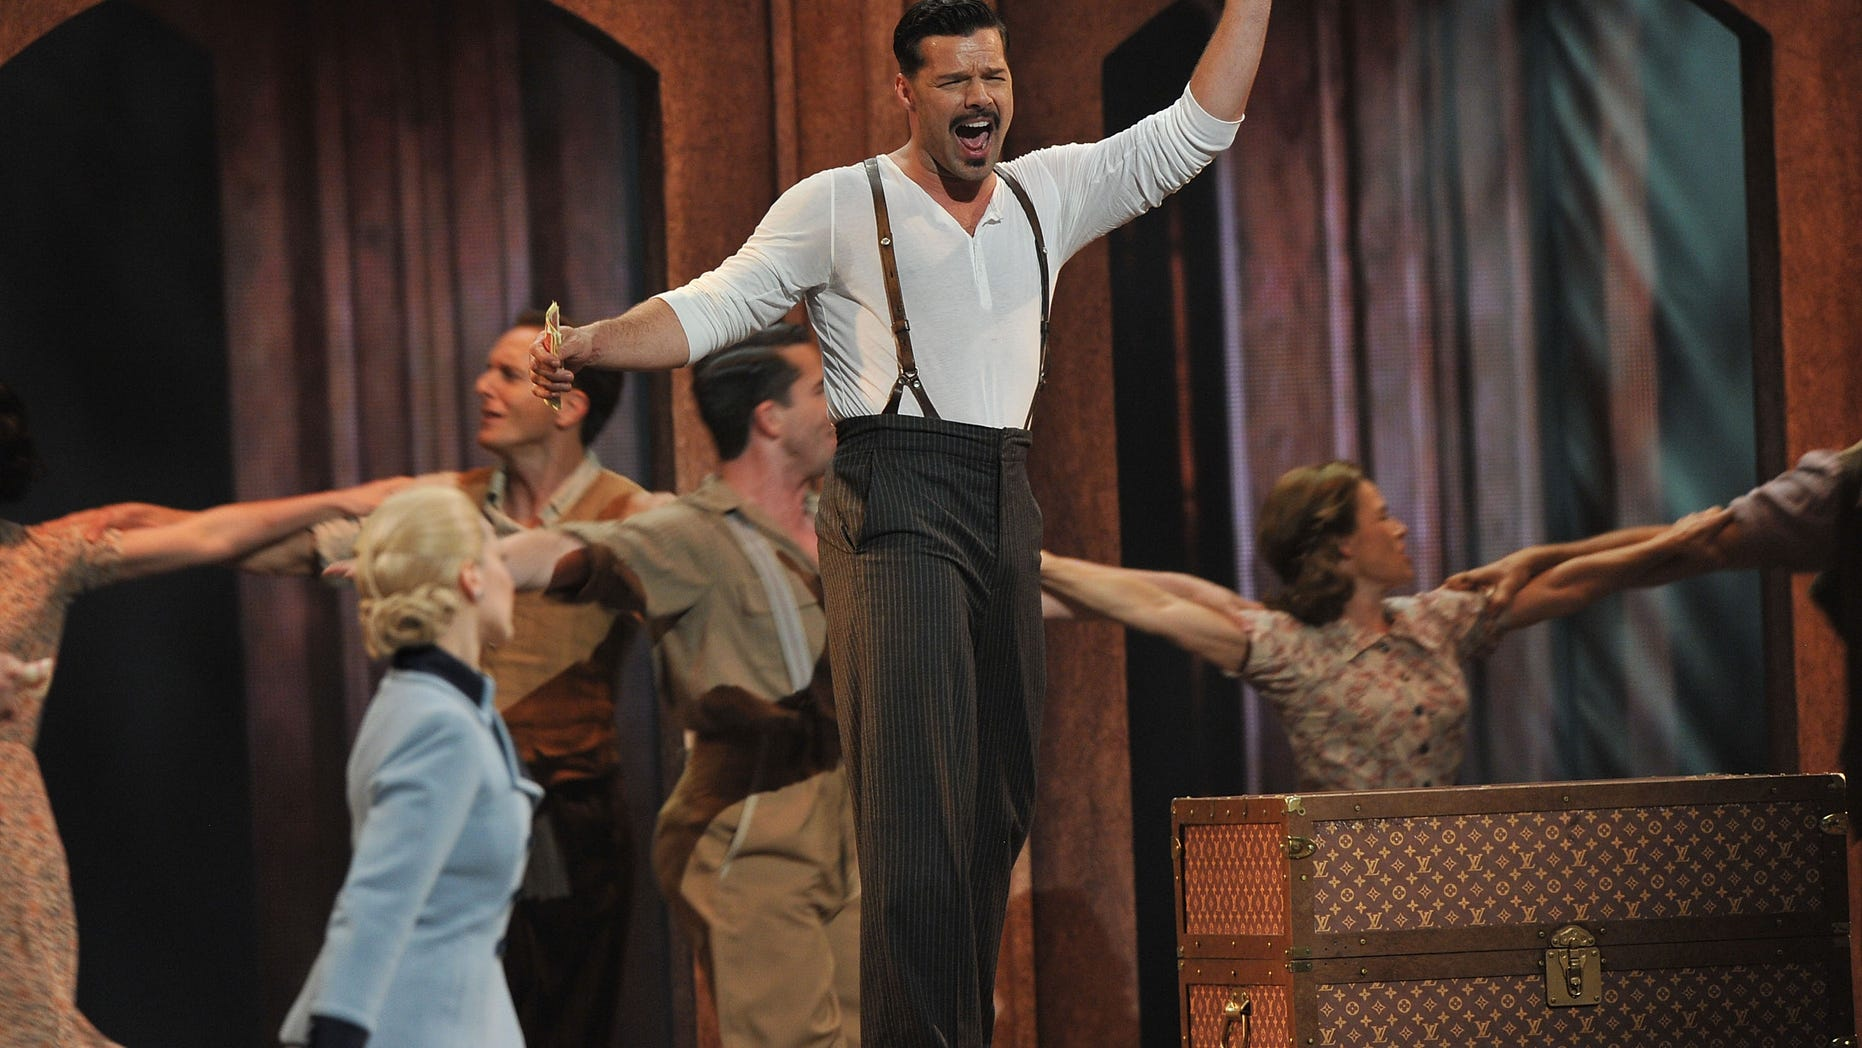 """NEW YORK, NY - JUNE 10:  Ricky Martin and Elena Roger of """"Evita"""" perform onstage at the 66th Annual Tony Awards at The Beacon Theatre on June 10, 2012 in New York City.  (Photo by Theo Wargo/Getty Images)"""